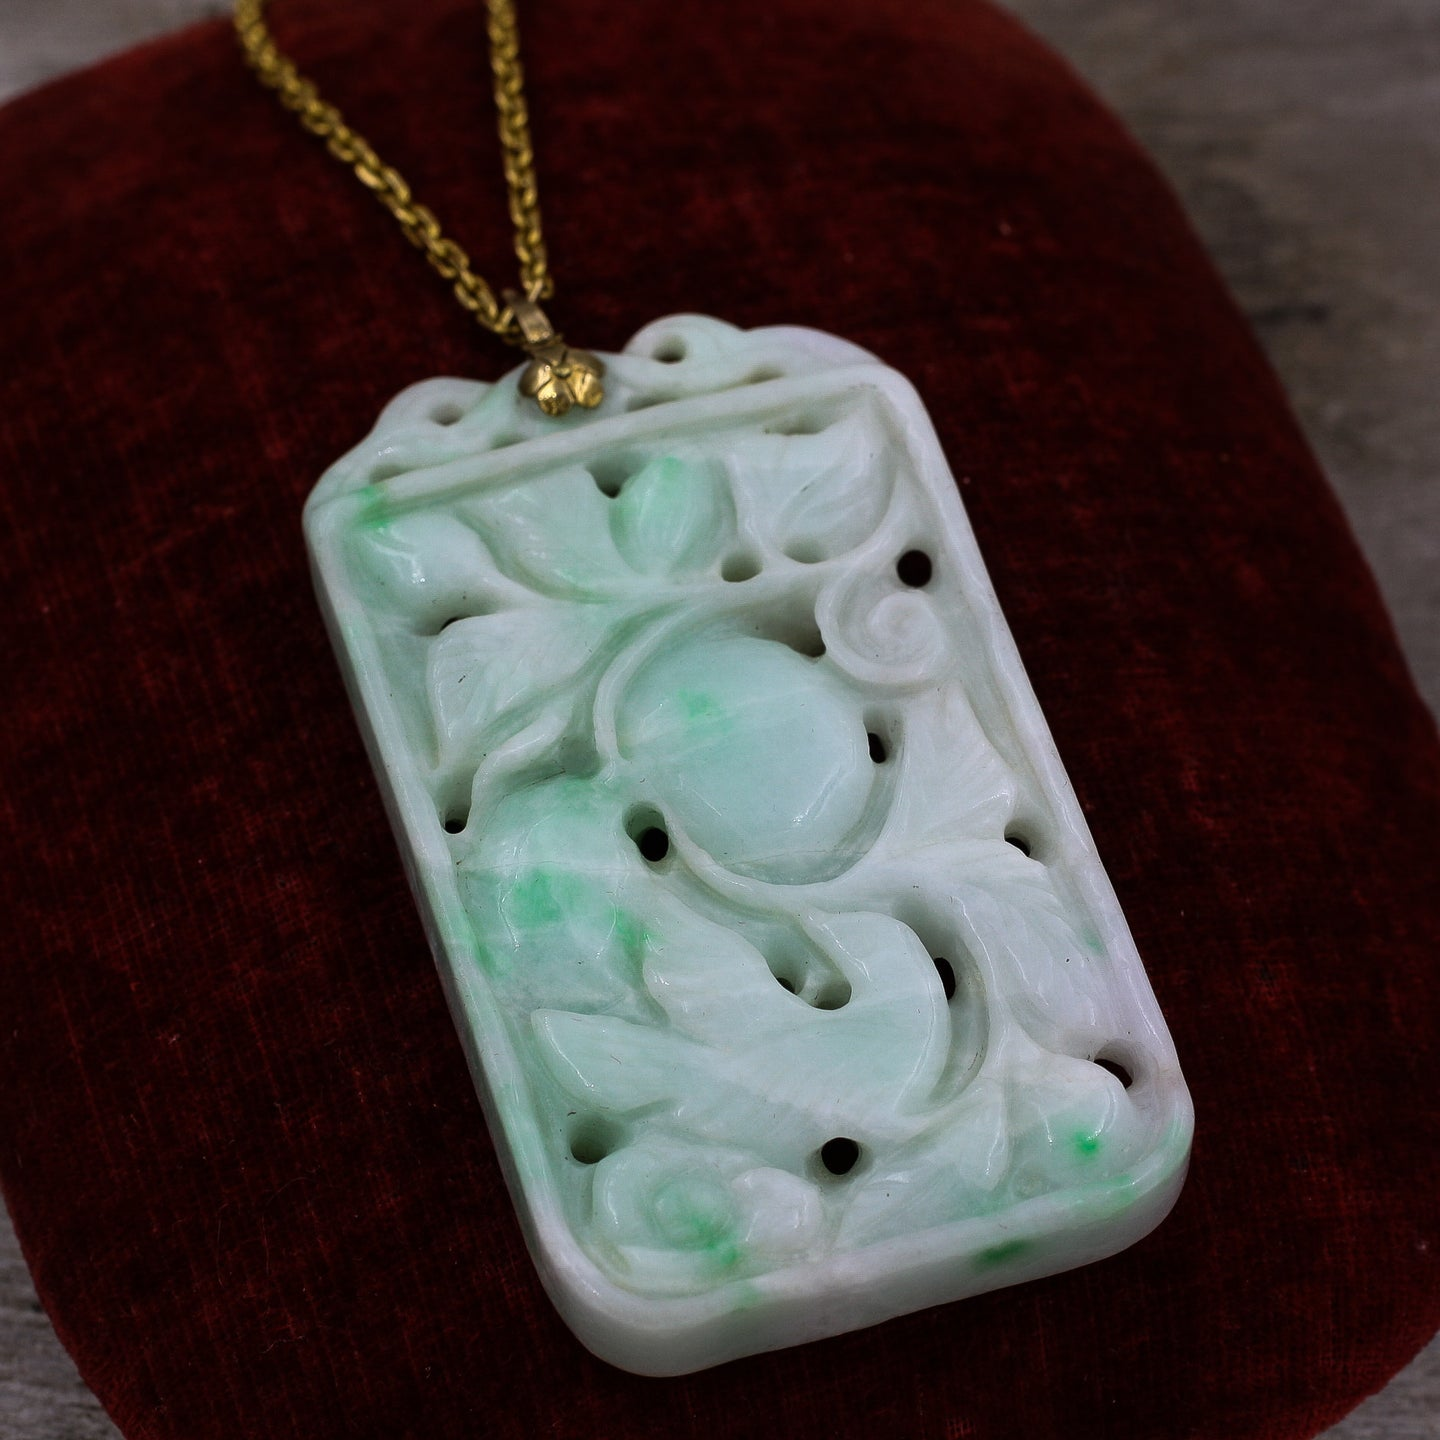 jade goldfilled chain necklace vintage elephant carved lovely pendant